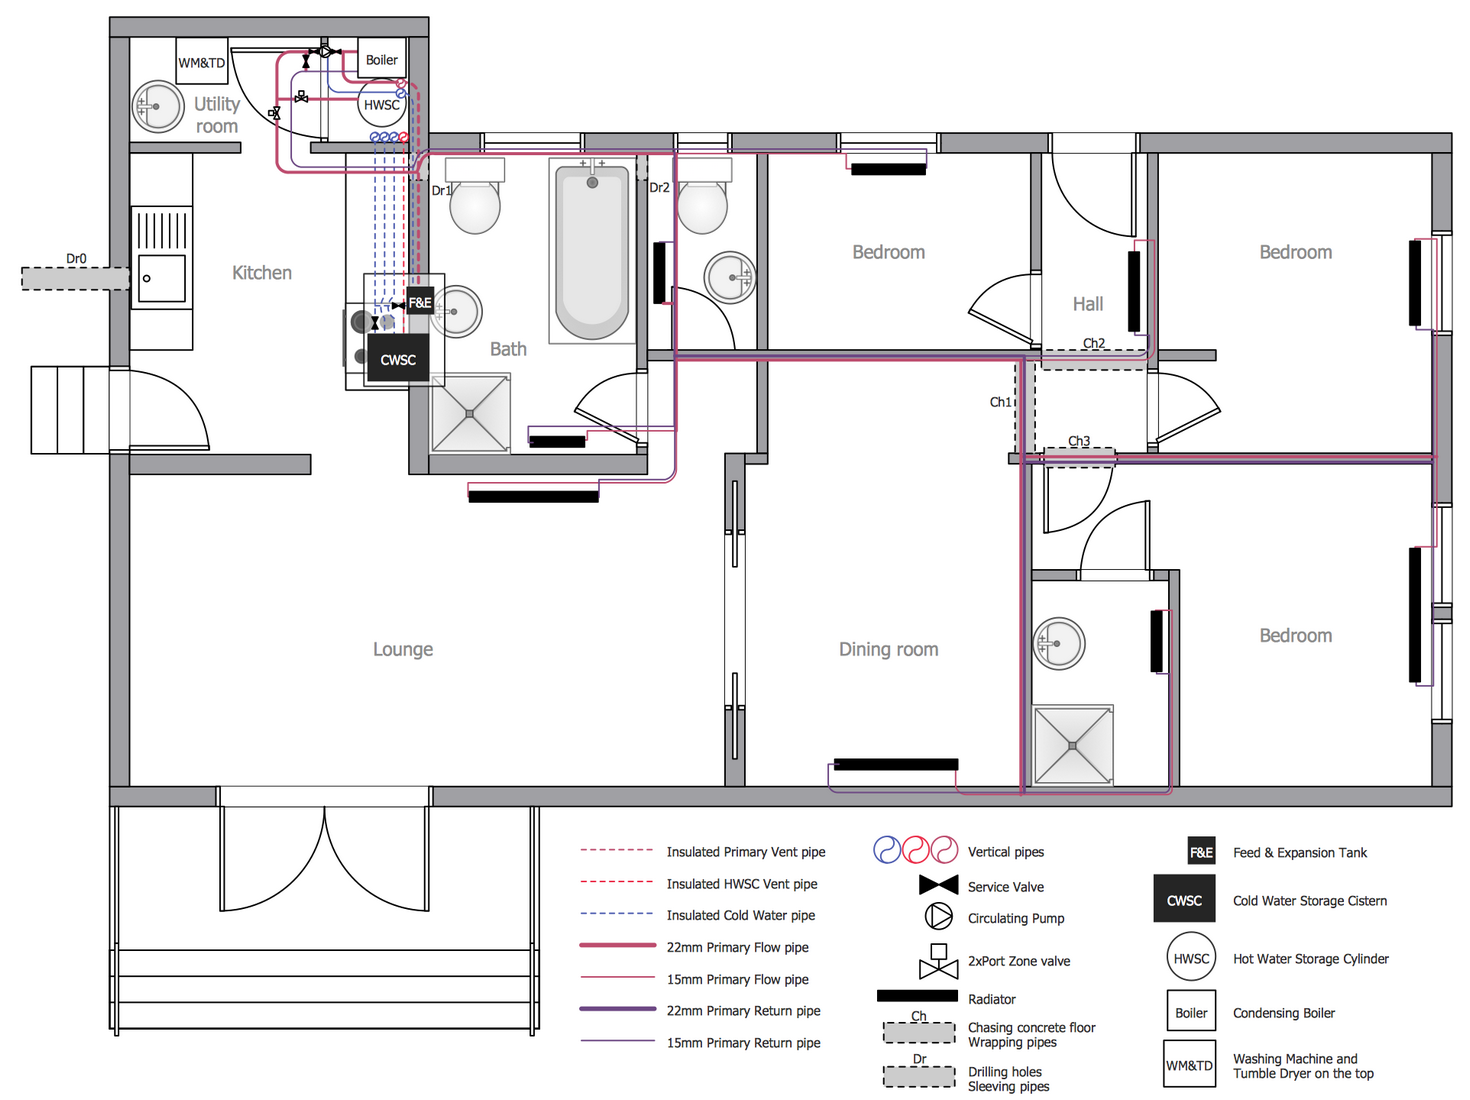 17 Automatic House Plumbing Diagram Http Bookingritzcarlton Info 17 Automatic House Plumbing Diagram Residential Plumbing Plumbing Drawing Floor Plans